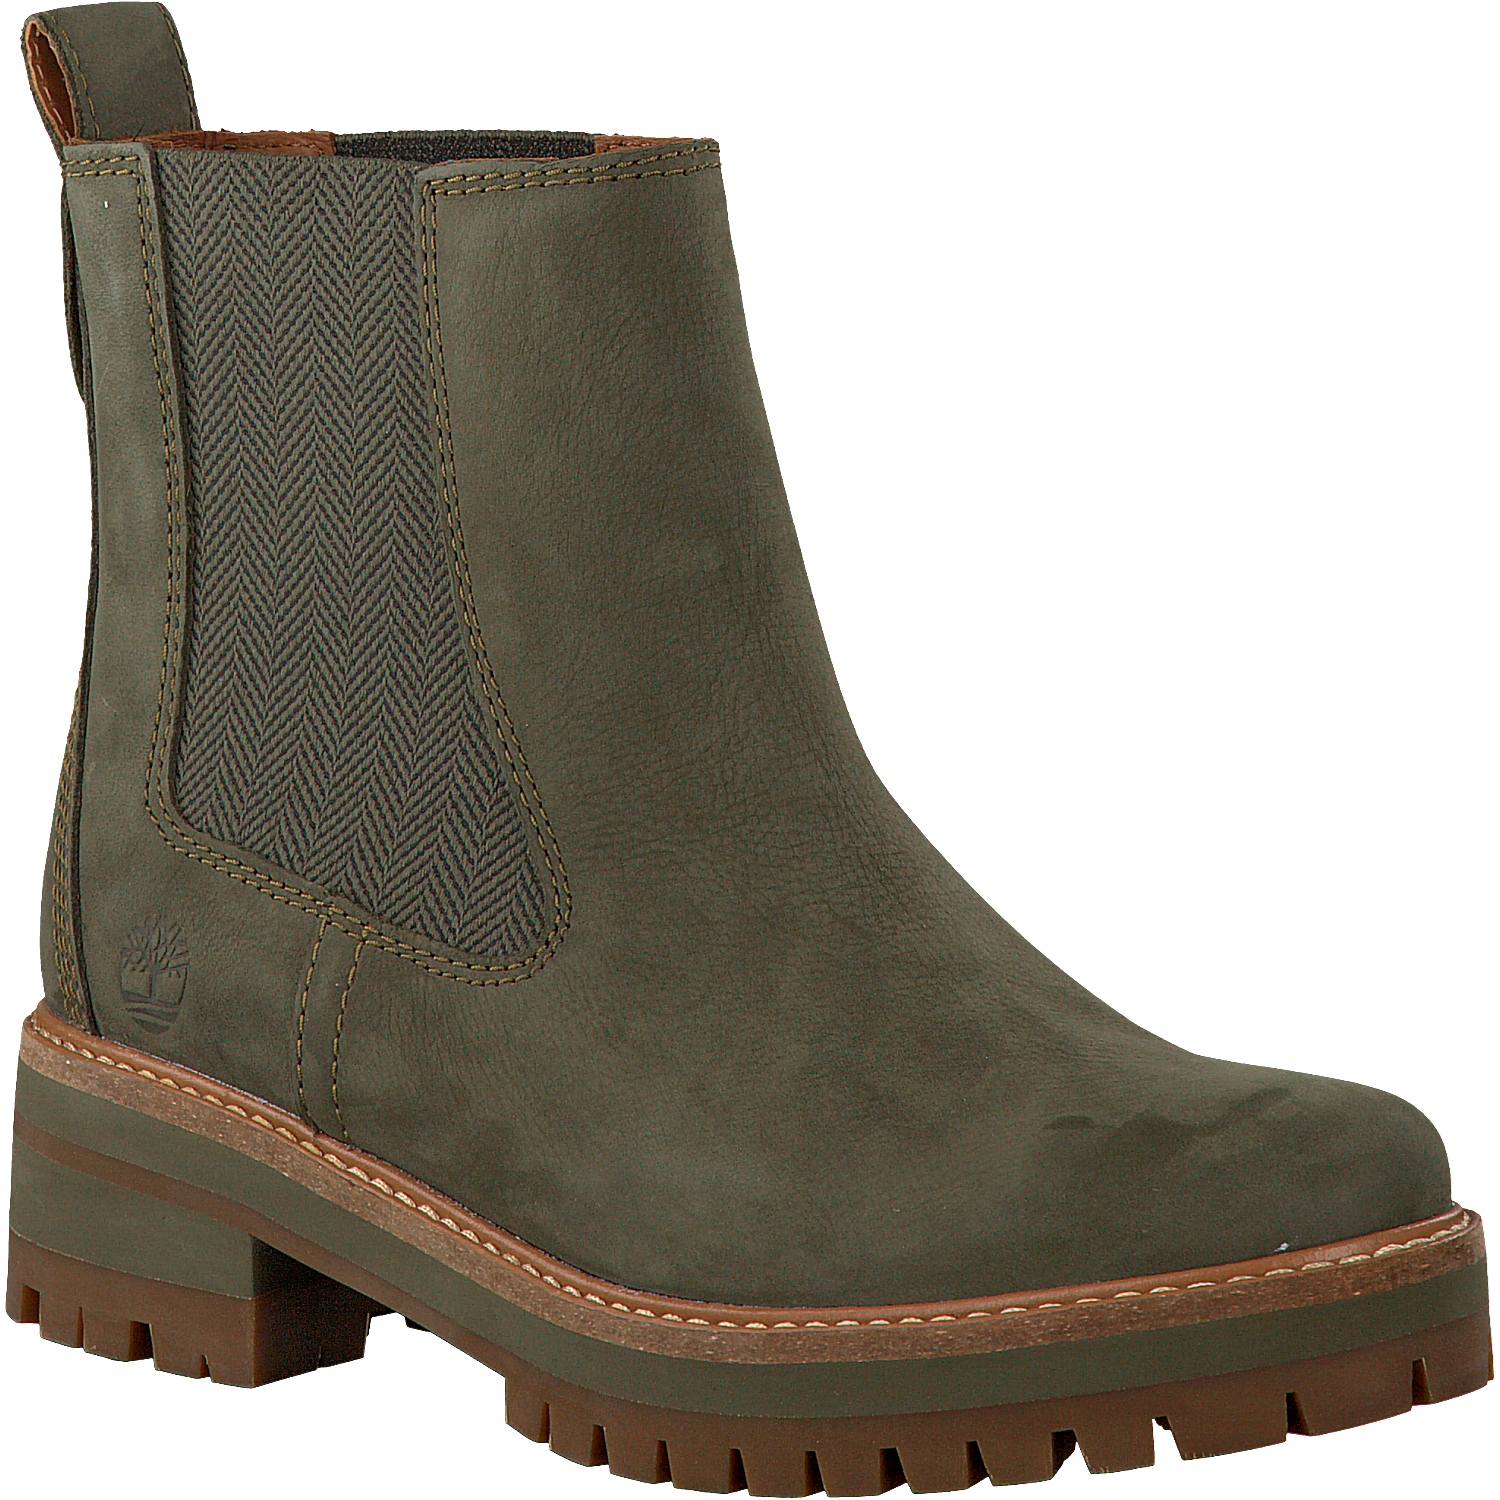 separation shoes 64cd2 8cb5c Grüne TIMBERLAND Chelsea Boots COURMAYEUR VALLEY CH